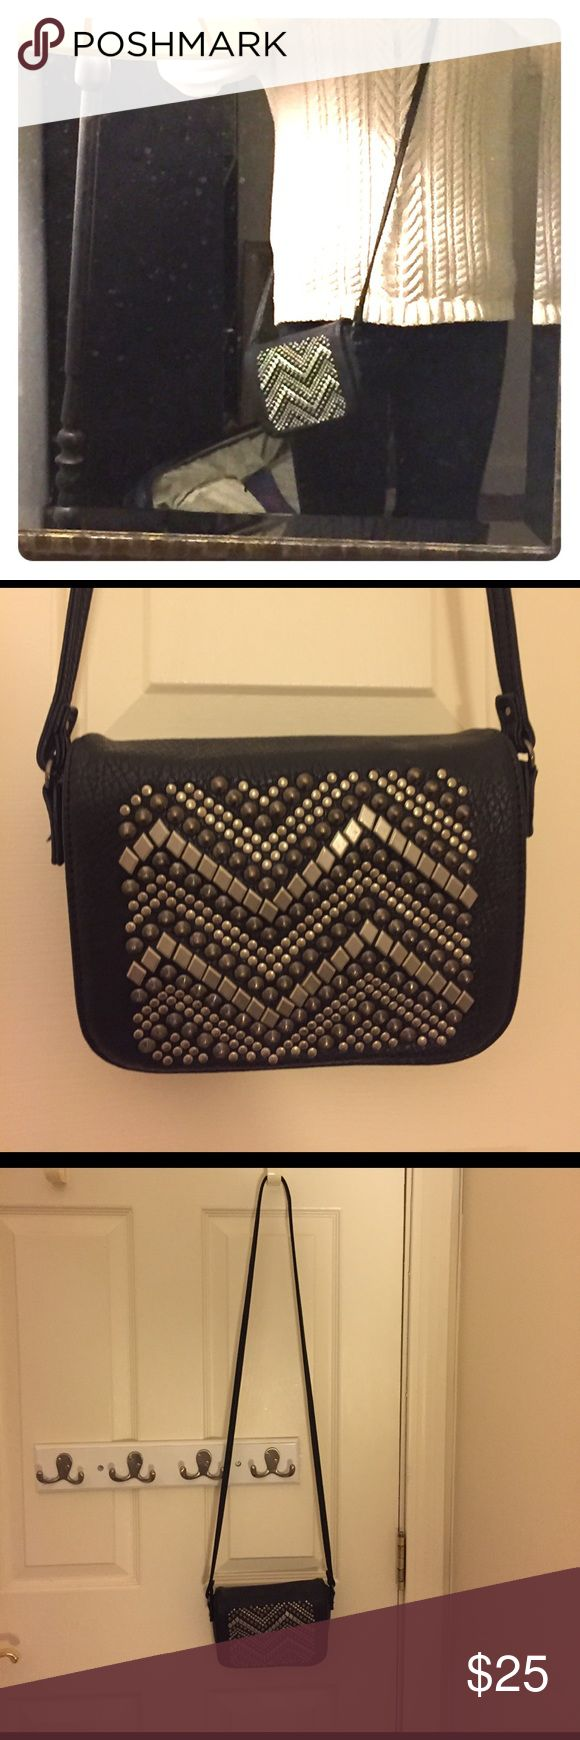 Urban Outfitters purse Small black purse with adorable beading. This purse is in perfect condition and was used once! Urban Outfitters Bags Crossbody Bags